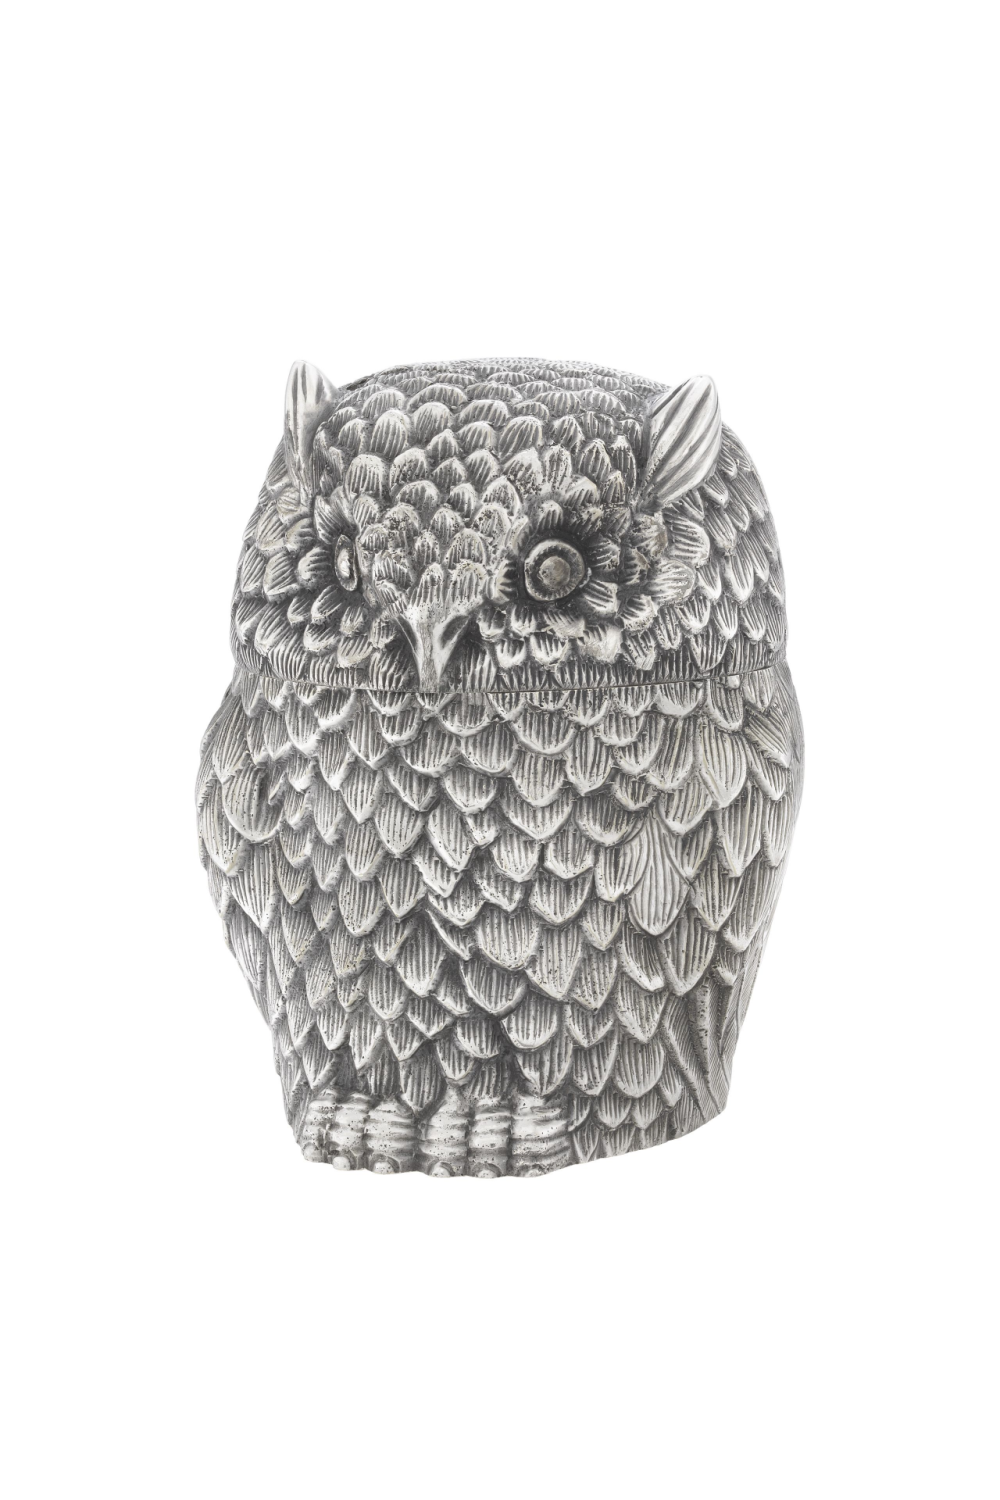 Antique Silver Decorative Box | Eichholtz Owl